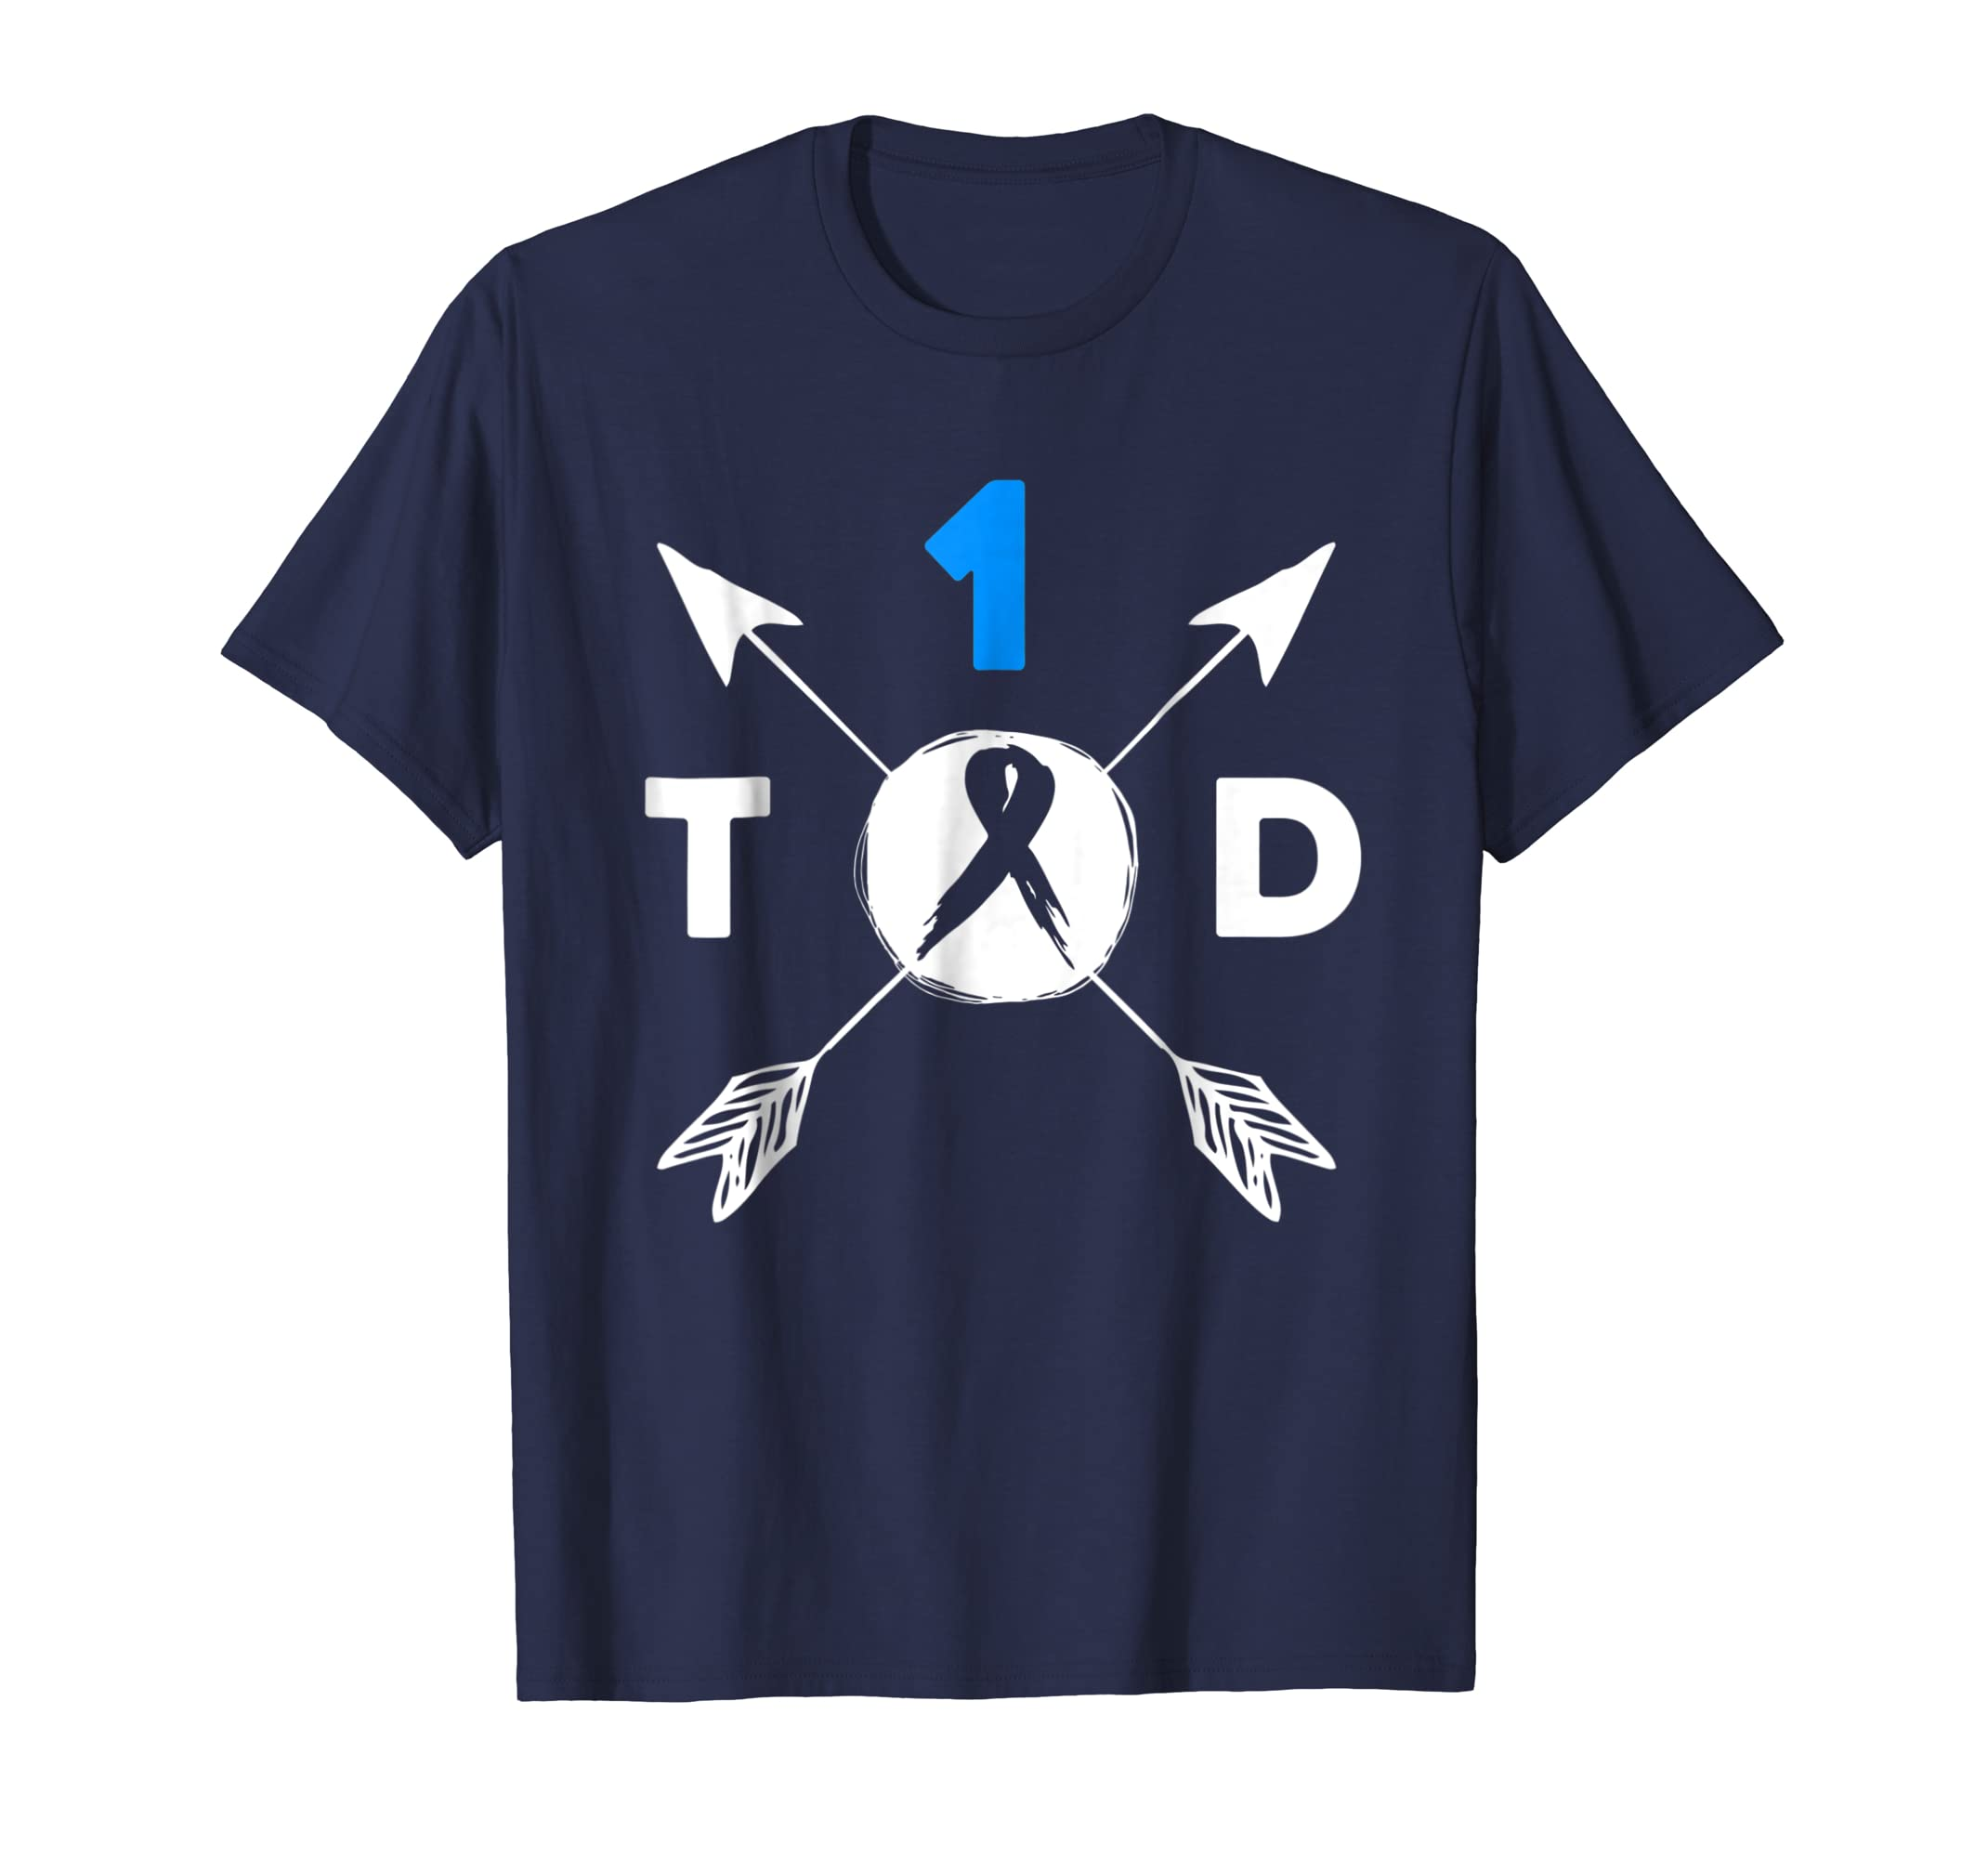 Type 1 Diabetes Awareness T1D One Der Ful Squad T Shirt-azvn